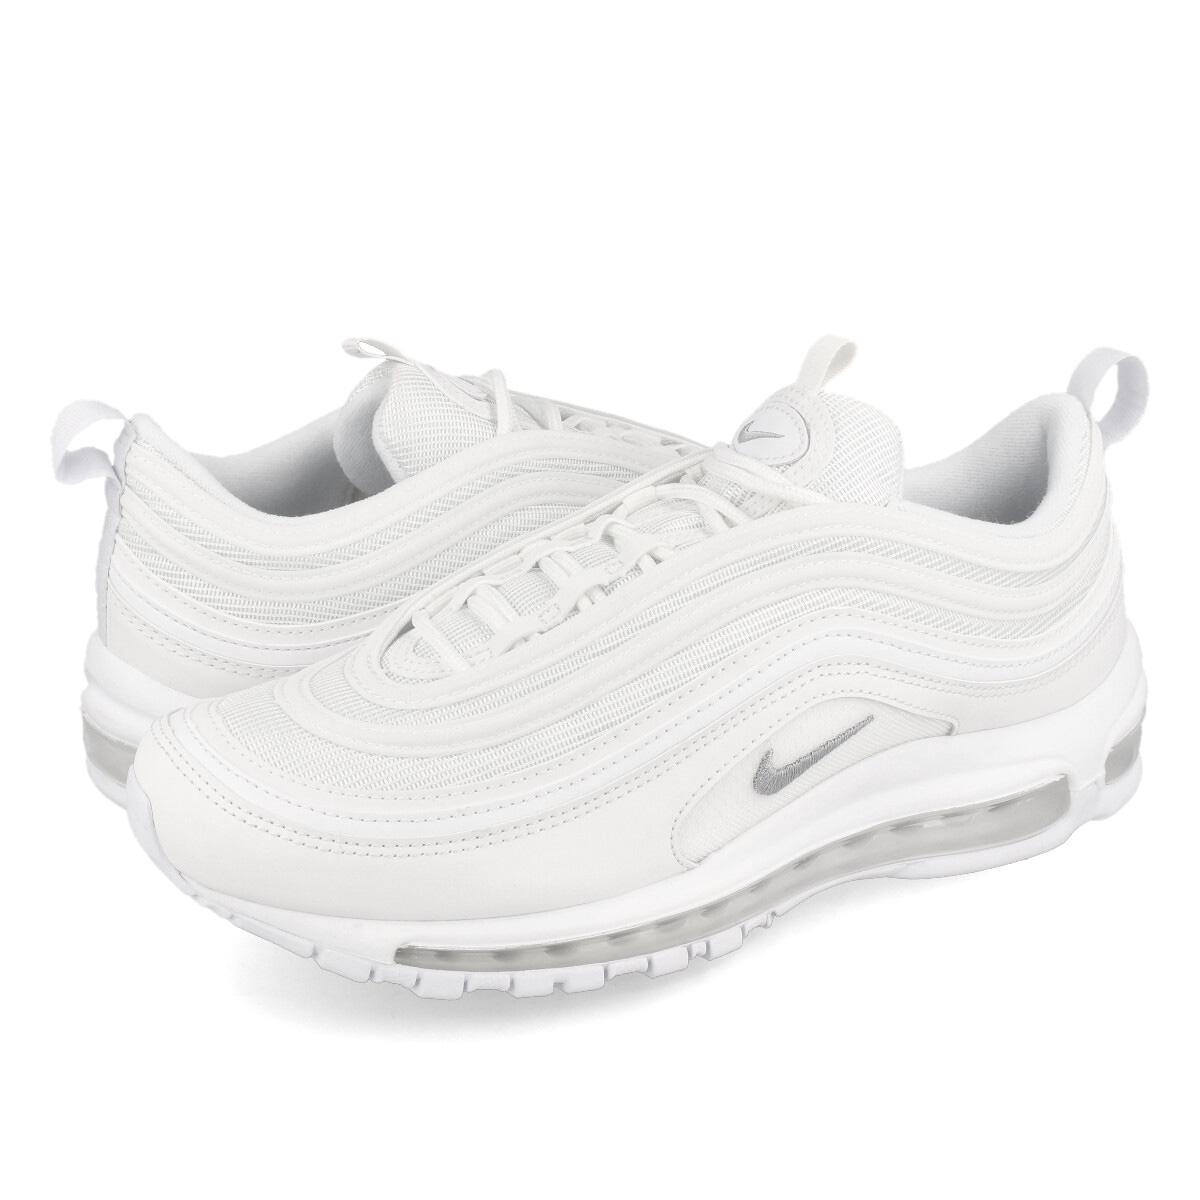 4d5f840159 SELECT SHOP LOWTEX: NIKE AIR MAX 97 Kie Ney AMAX 97 WHITE/WHITE ...